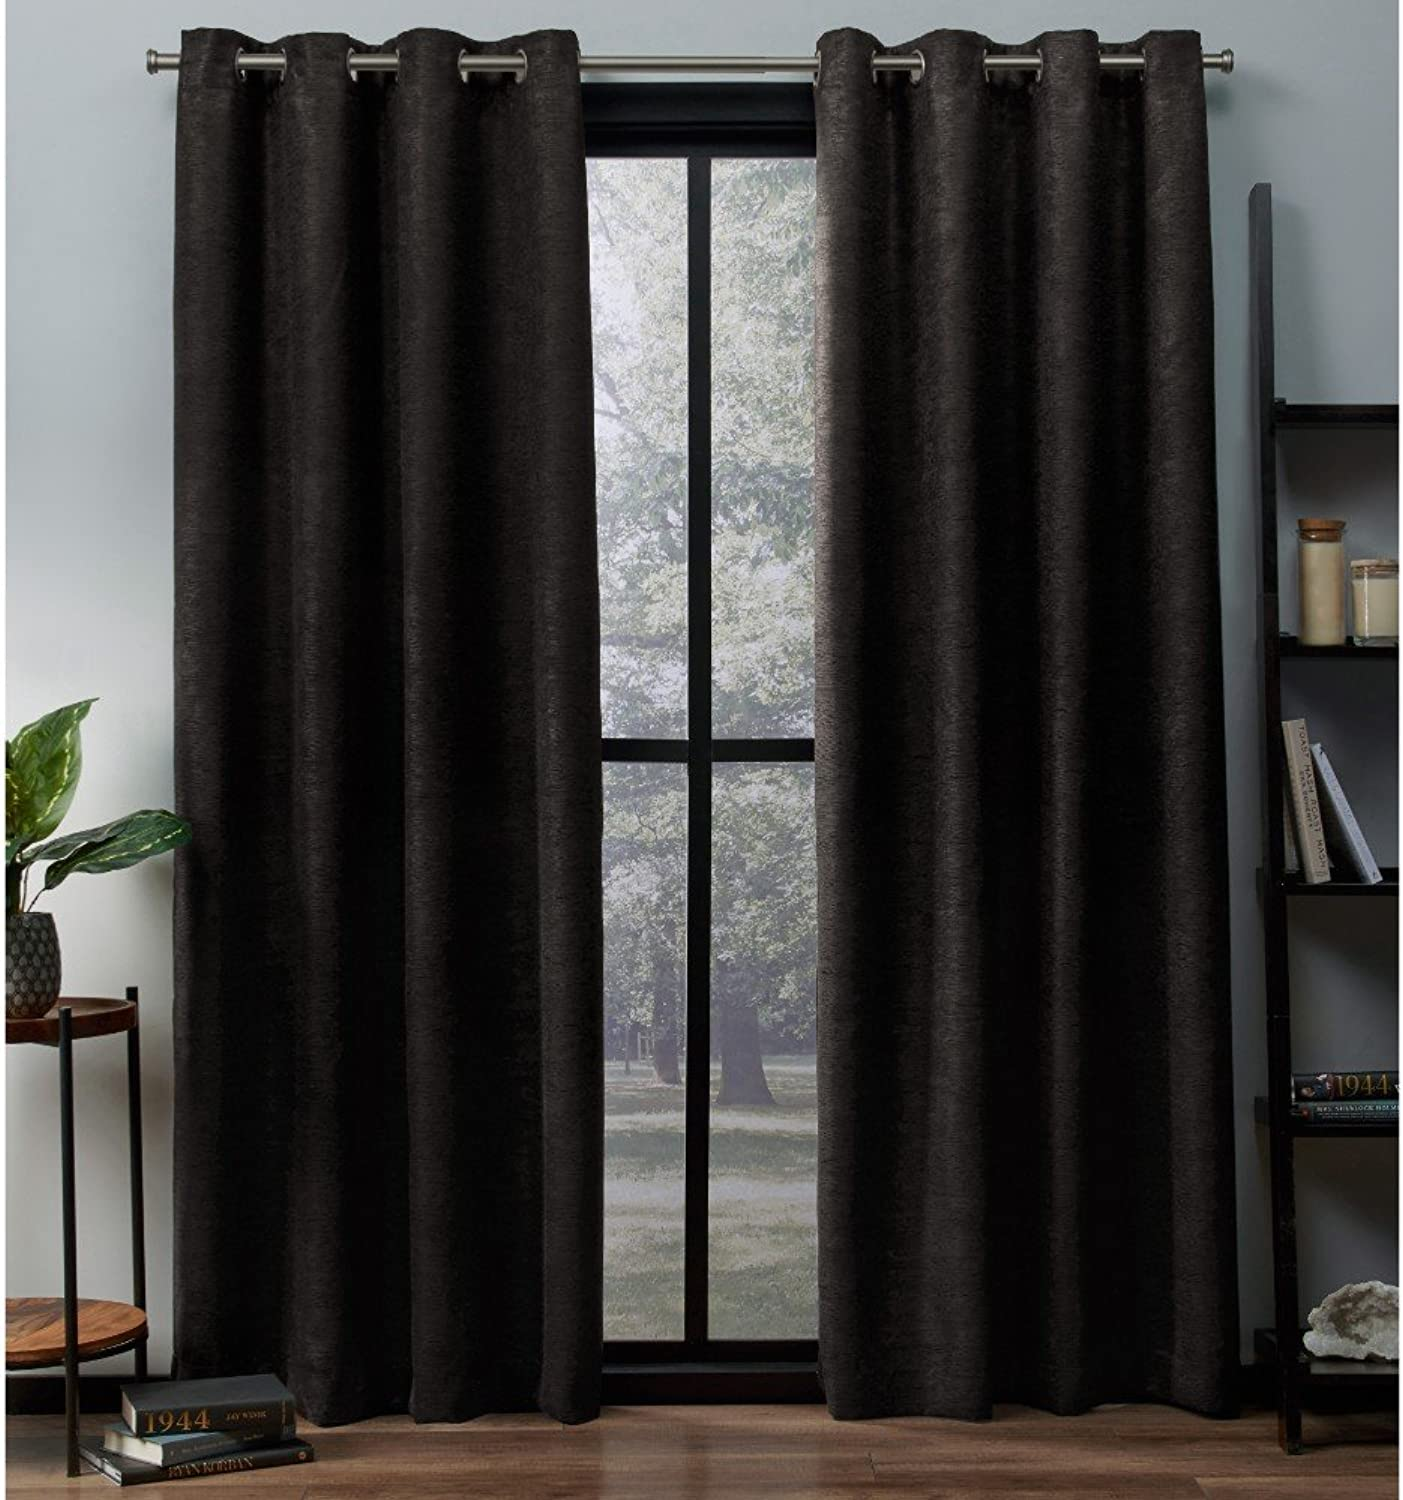 Exclusive Home Curtains Oxford Textured Sateen Thermal Window Curtain Panel Pair with Grommet Top, 52x108, Espresso, 2 Piece